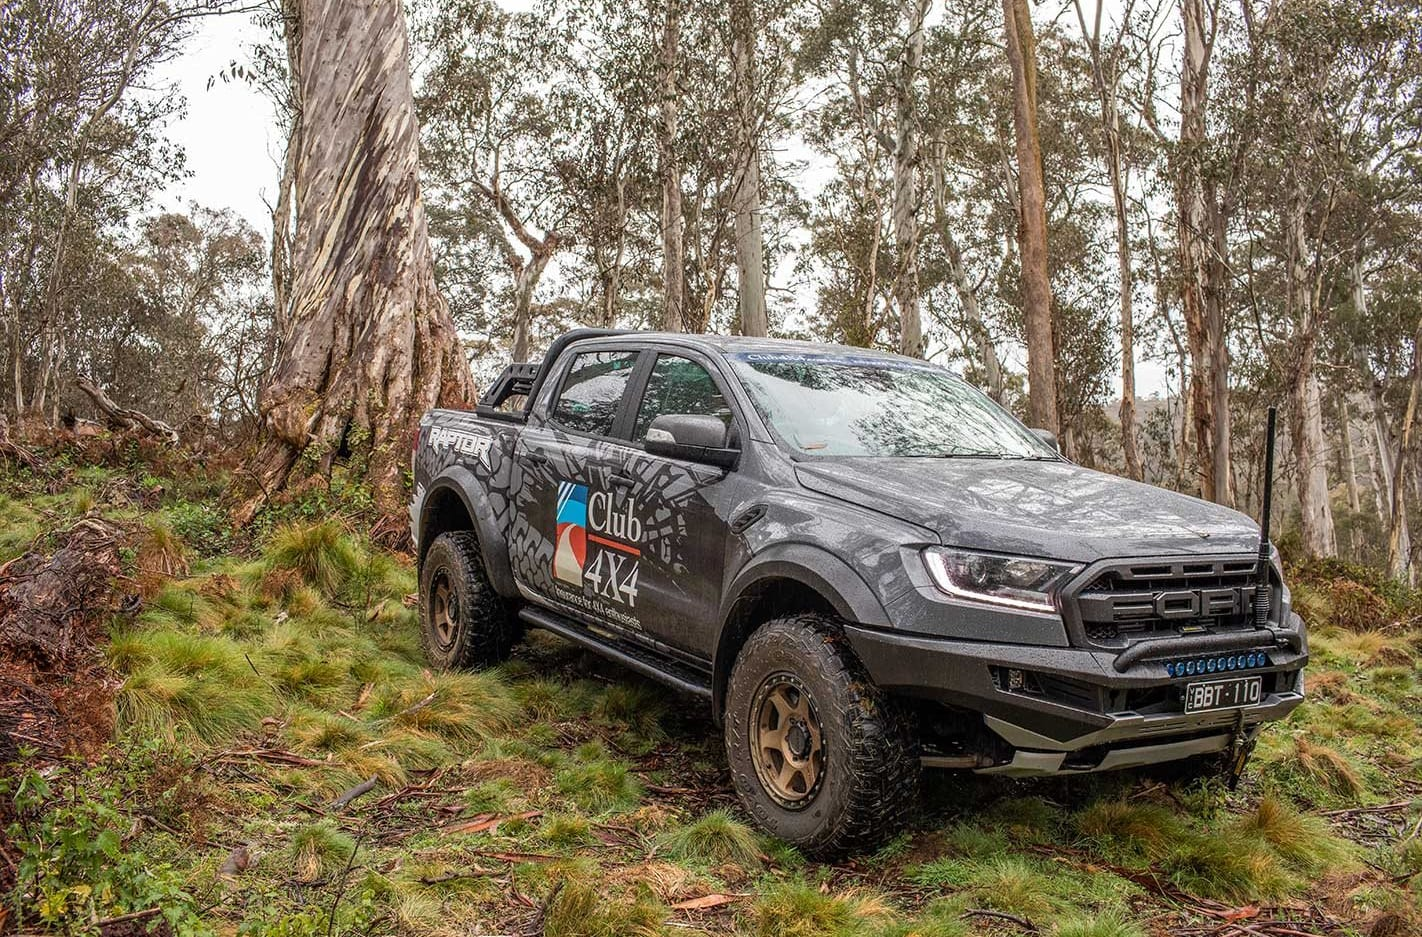 Toyo Tires and Club 4x4 join forces